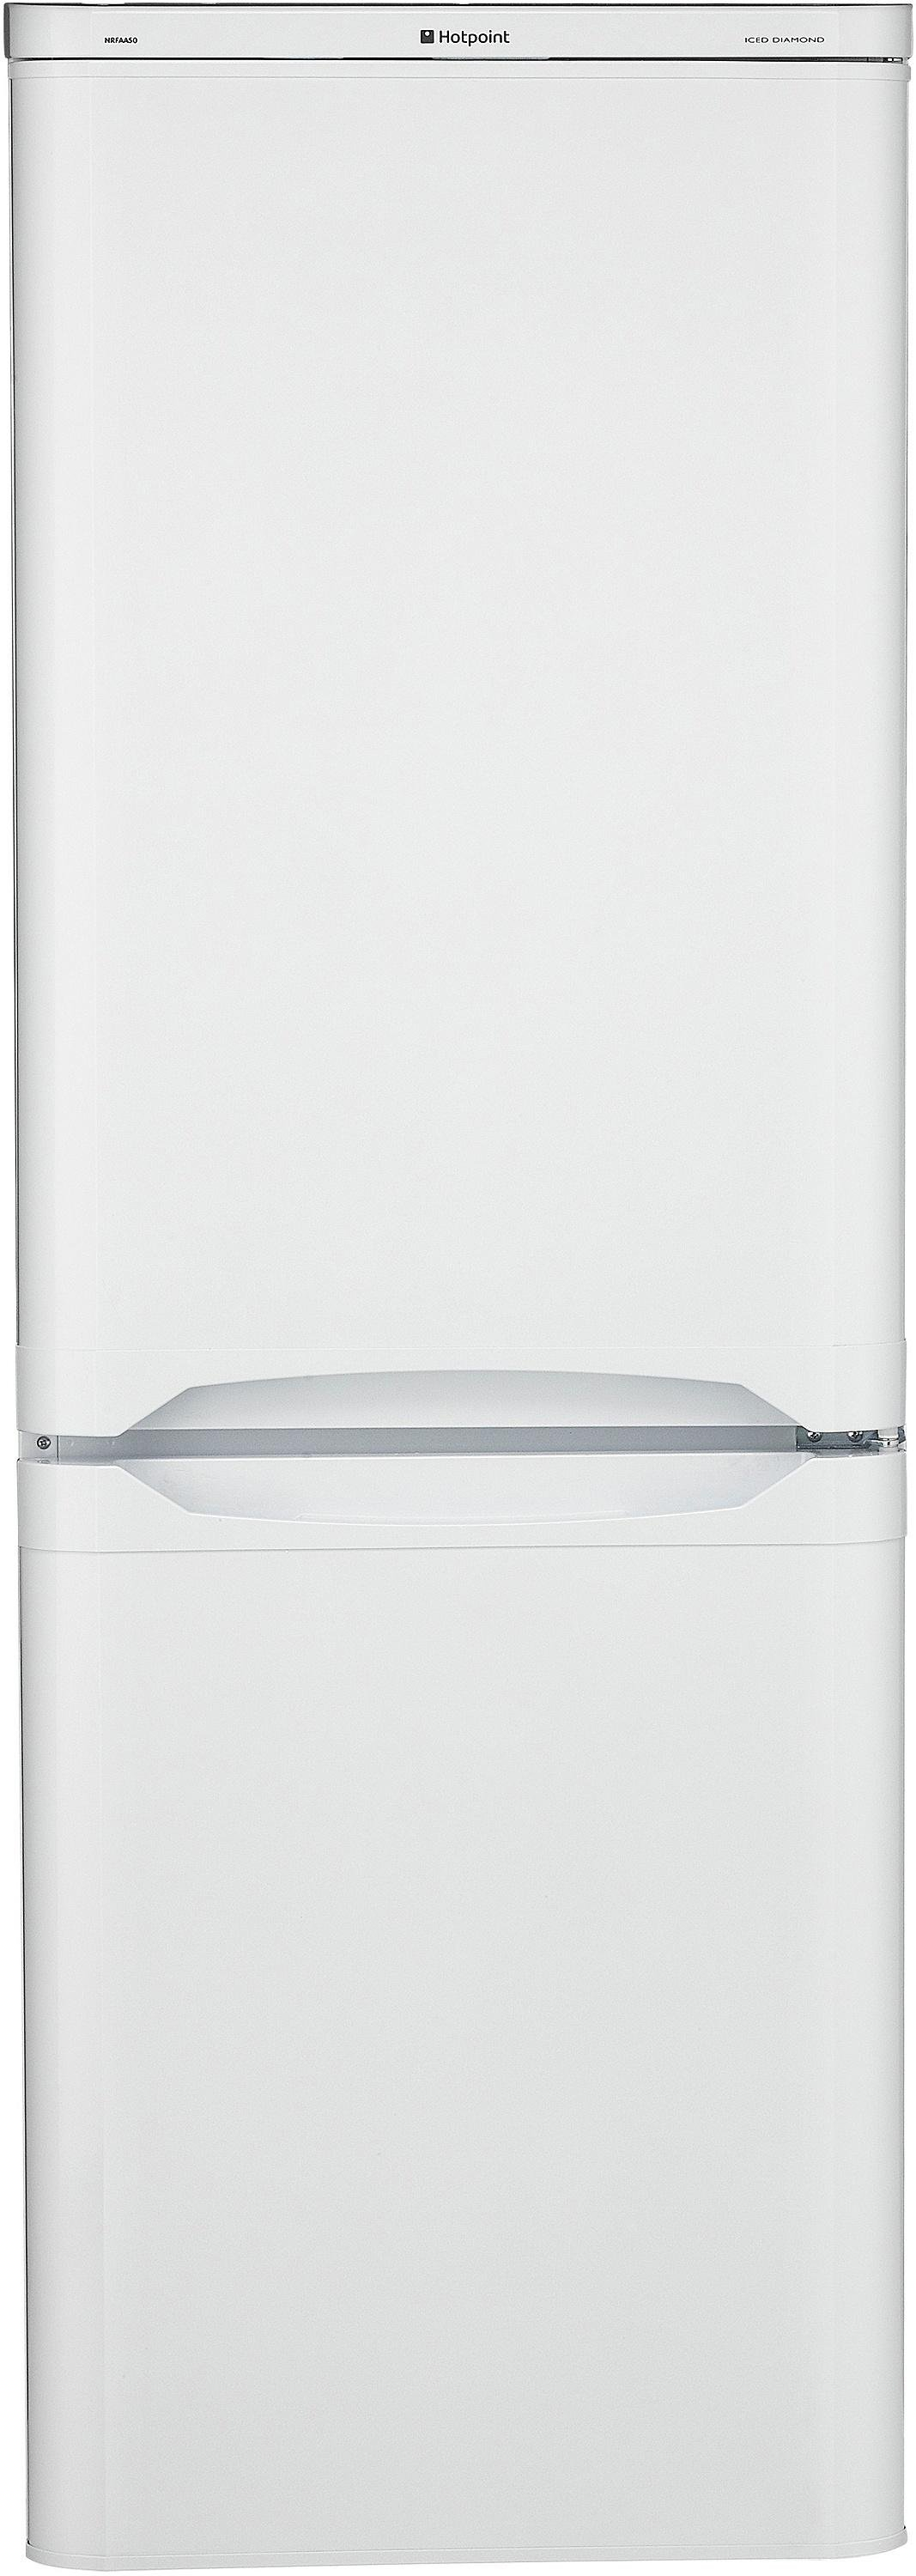 Hotpoint First Edition NRFAA50P Fridge Freezer - White